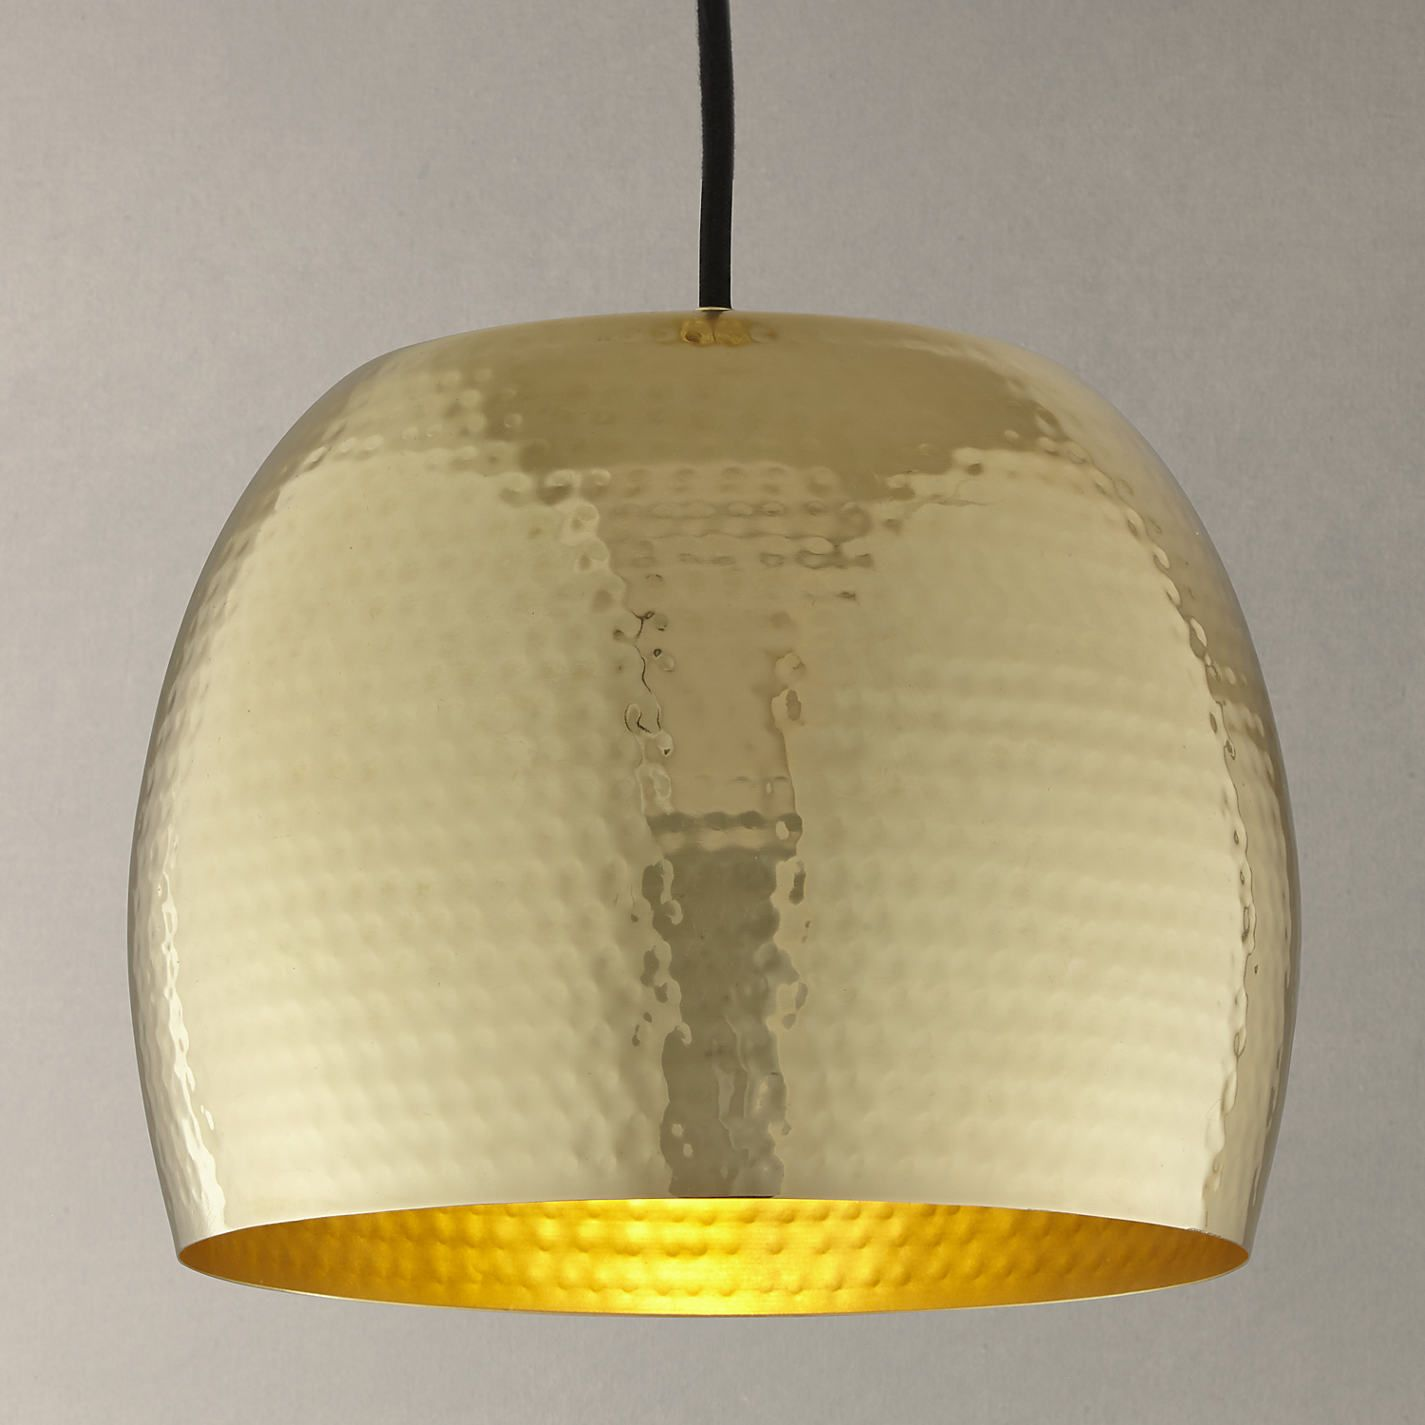 Buy john lewis thalia hammered brass pendant light from our view all buy john lewis thalia hammered brass pendant light from our view all ceiling lighting range at john lewis free delivery on orders over 50 mozeypictures Images